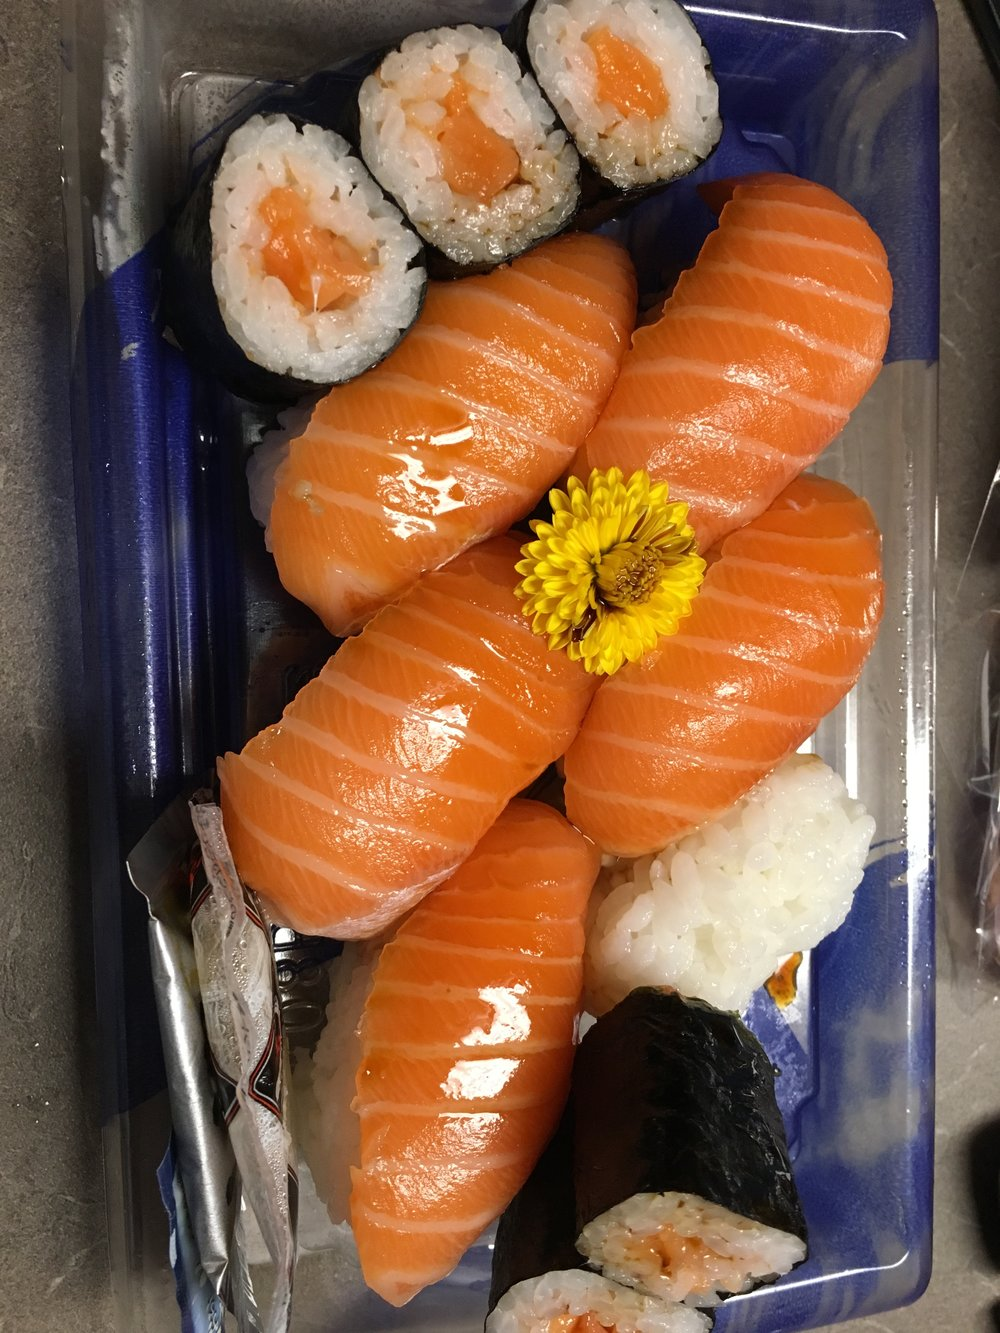 Sushi straight from Japan same day delivery.